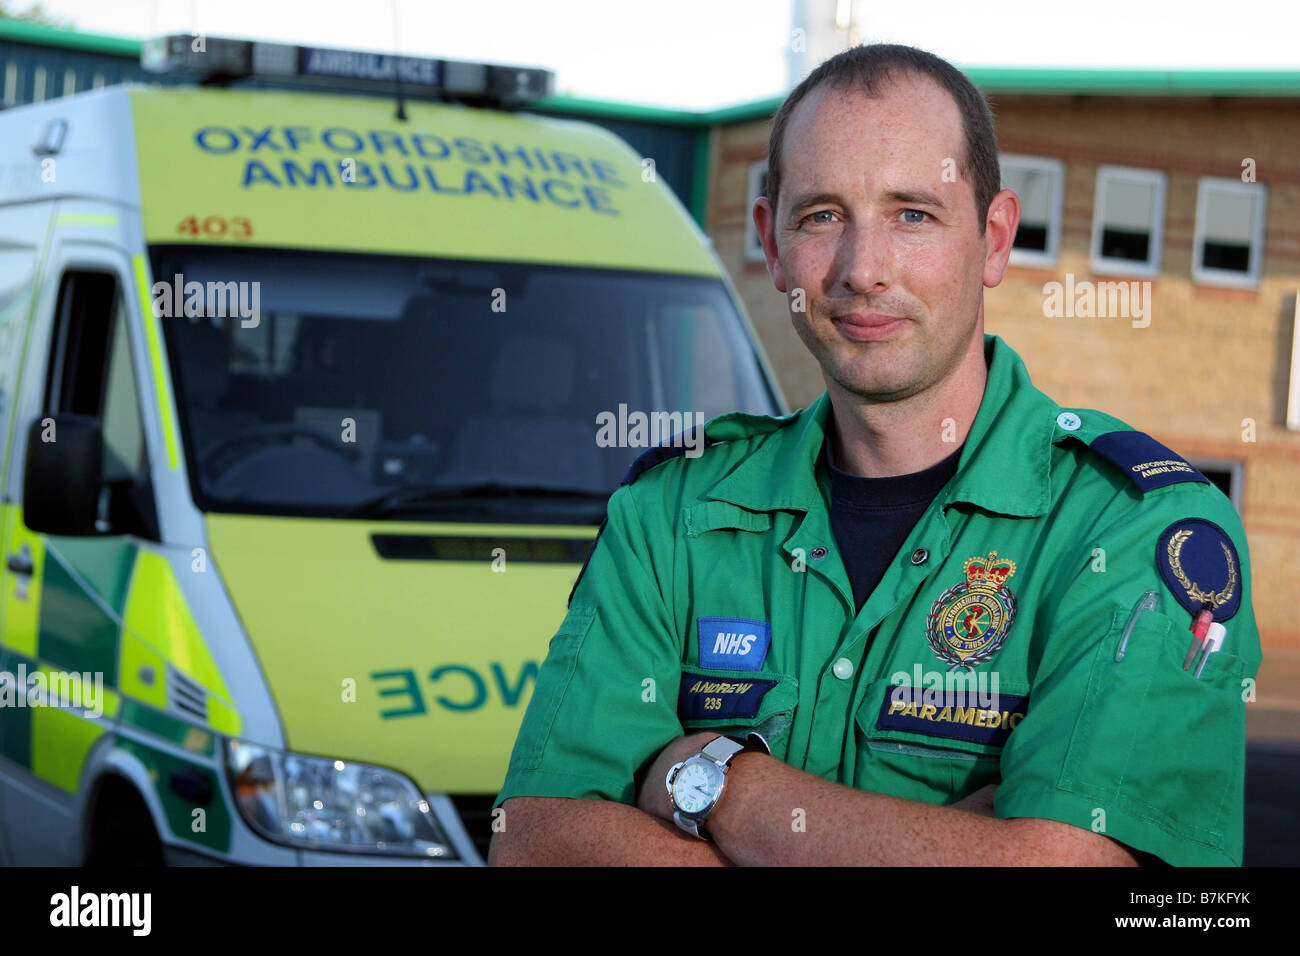 Paramedic Andy Ball in Oxfordshire - Stock Image